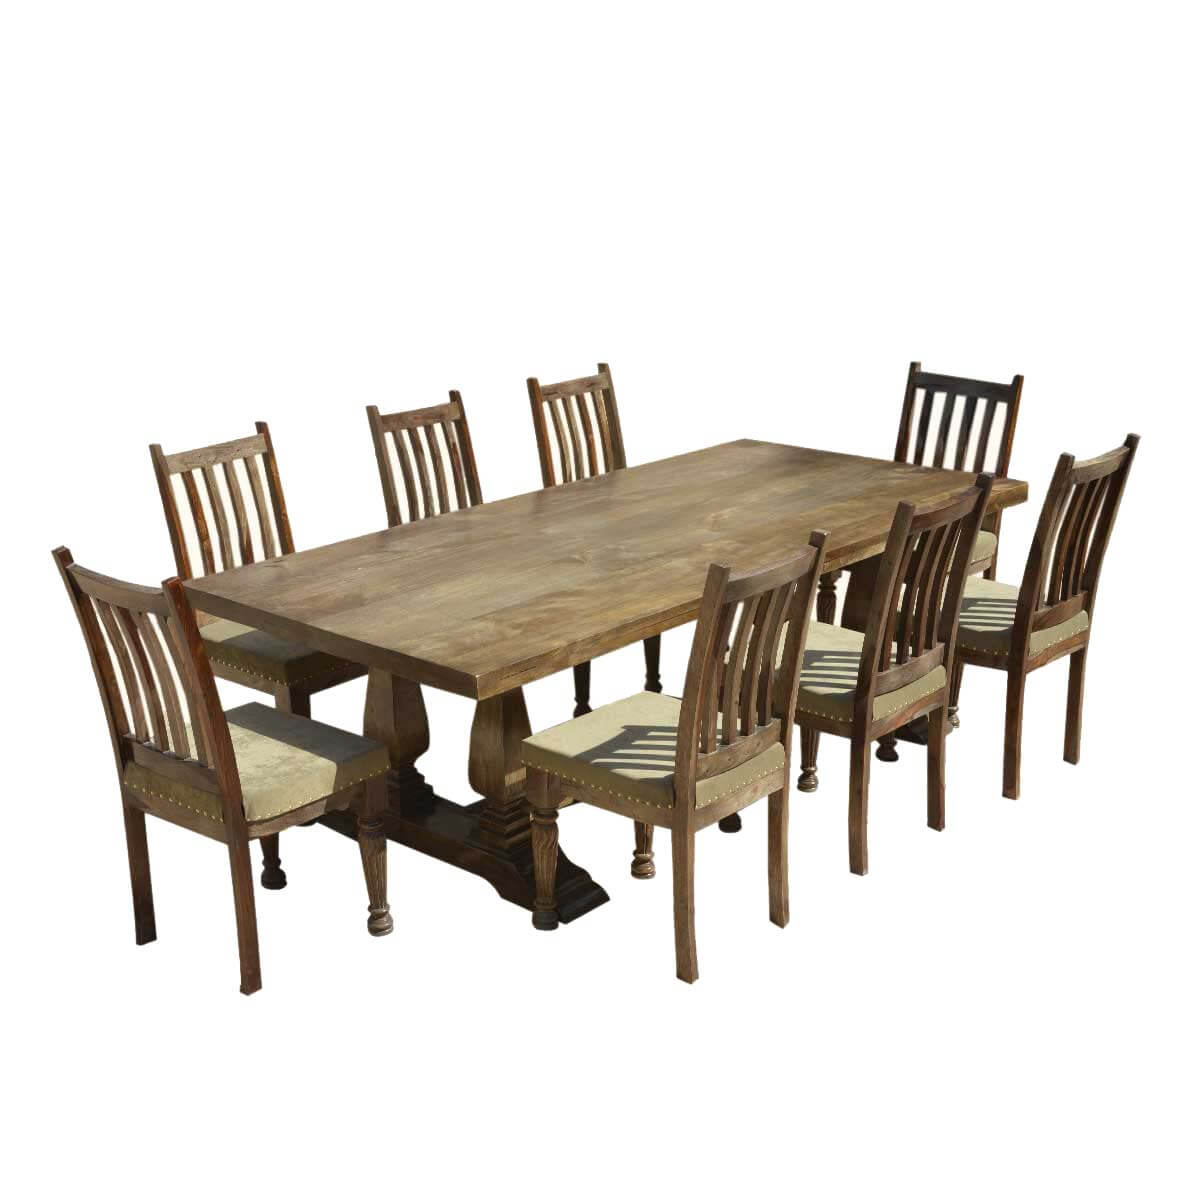 farmhouse dining chairs giant deck chair solid wood trestle rustic table